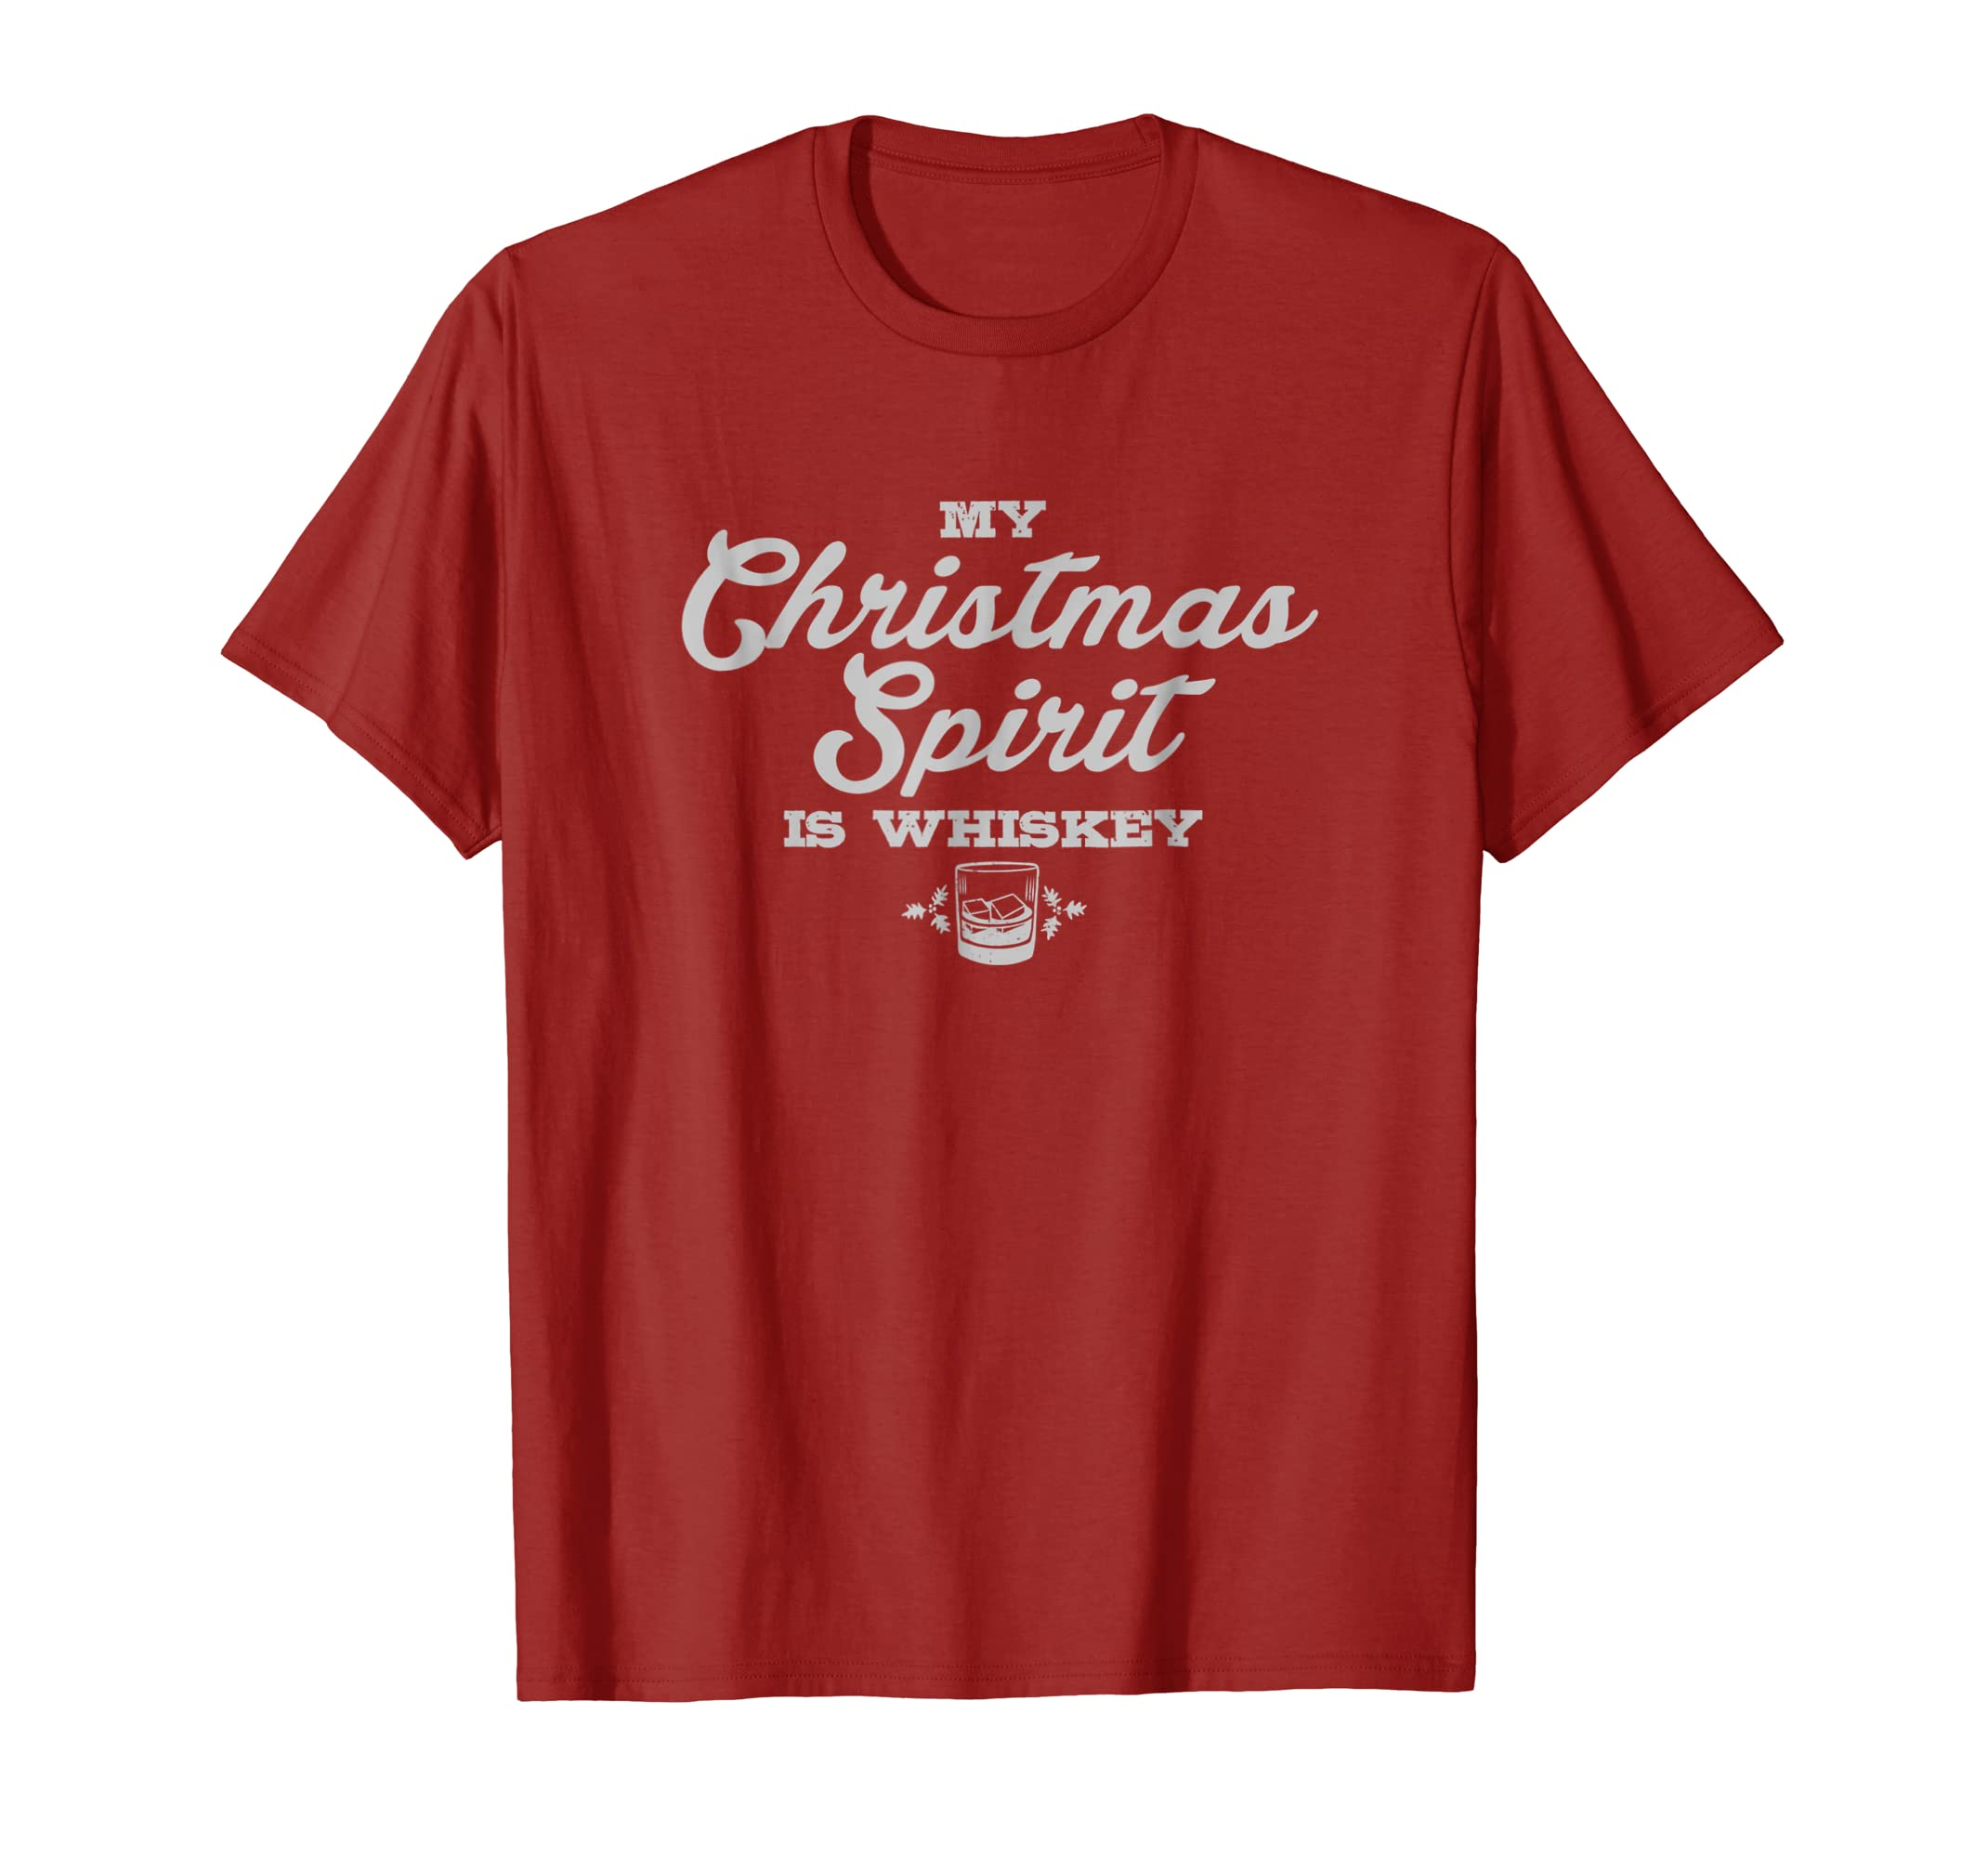 60a2f96ac Amazon.com: Funny Christmas Alcohol Drinking Whiskey Saying Gift Tshirt:  Clothing